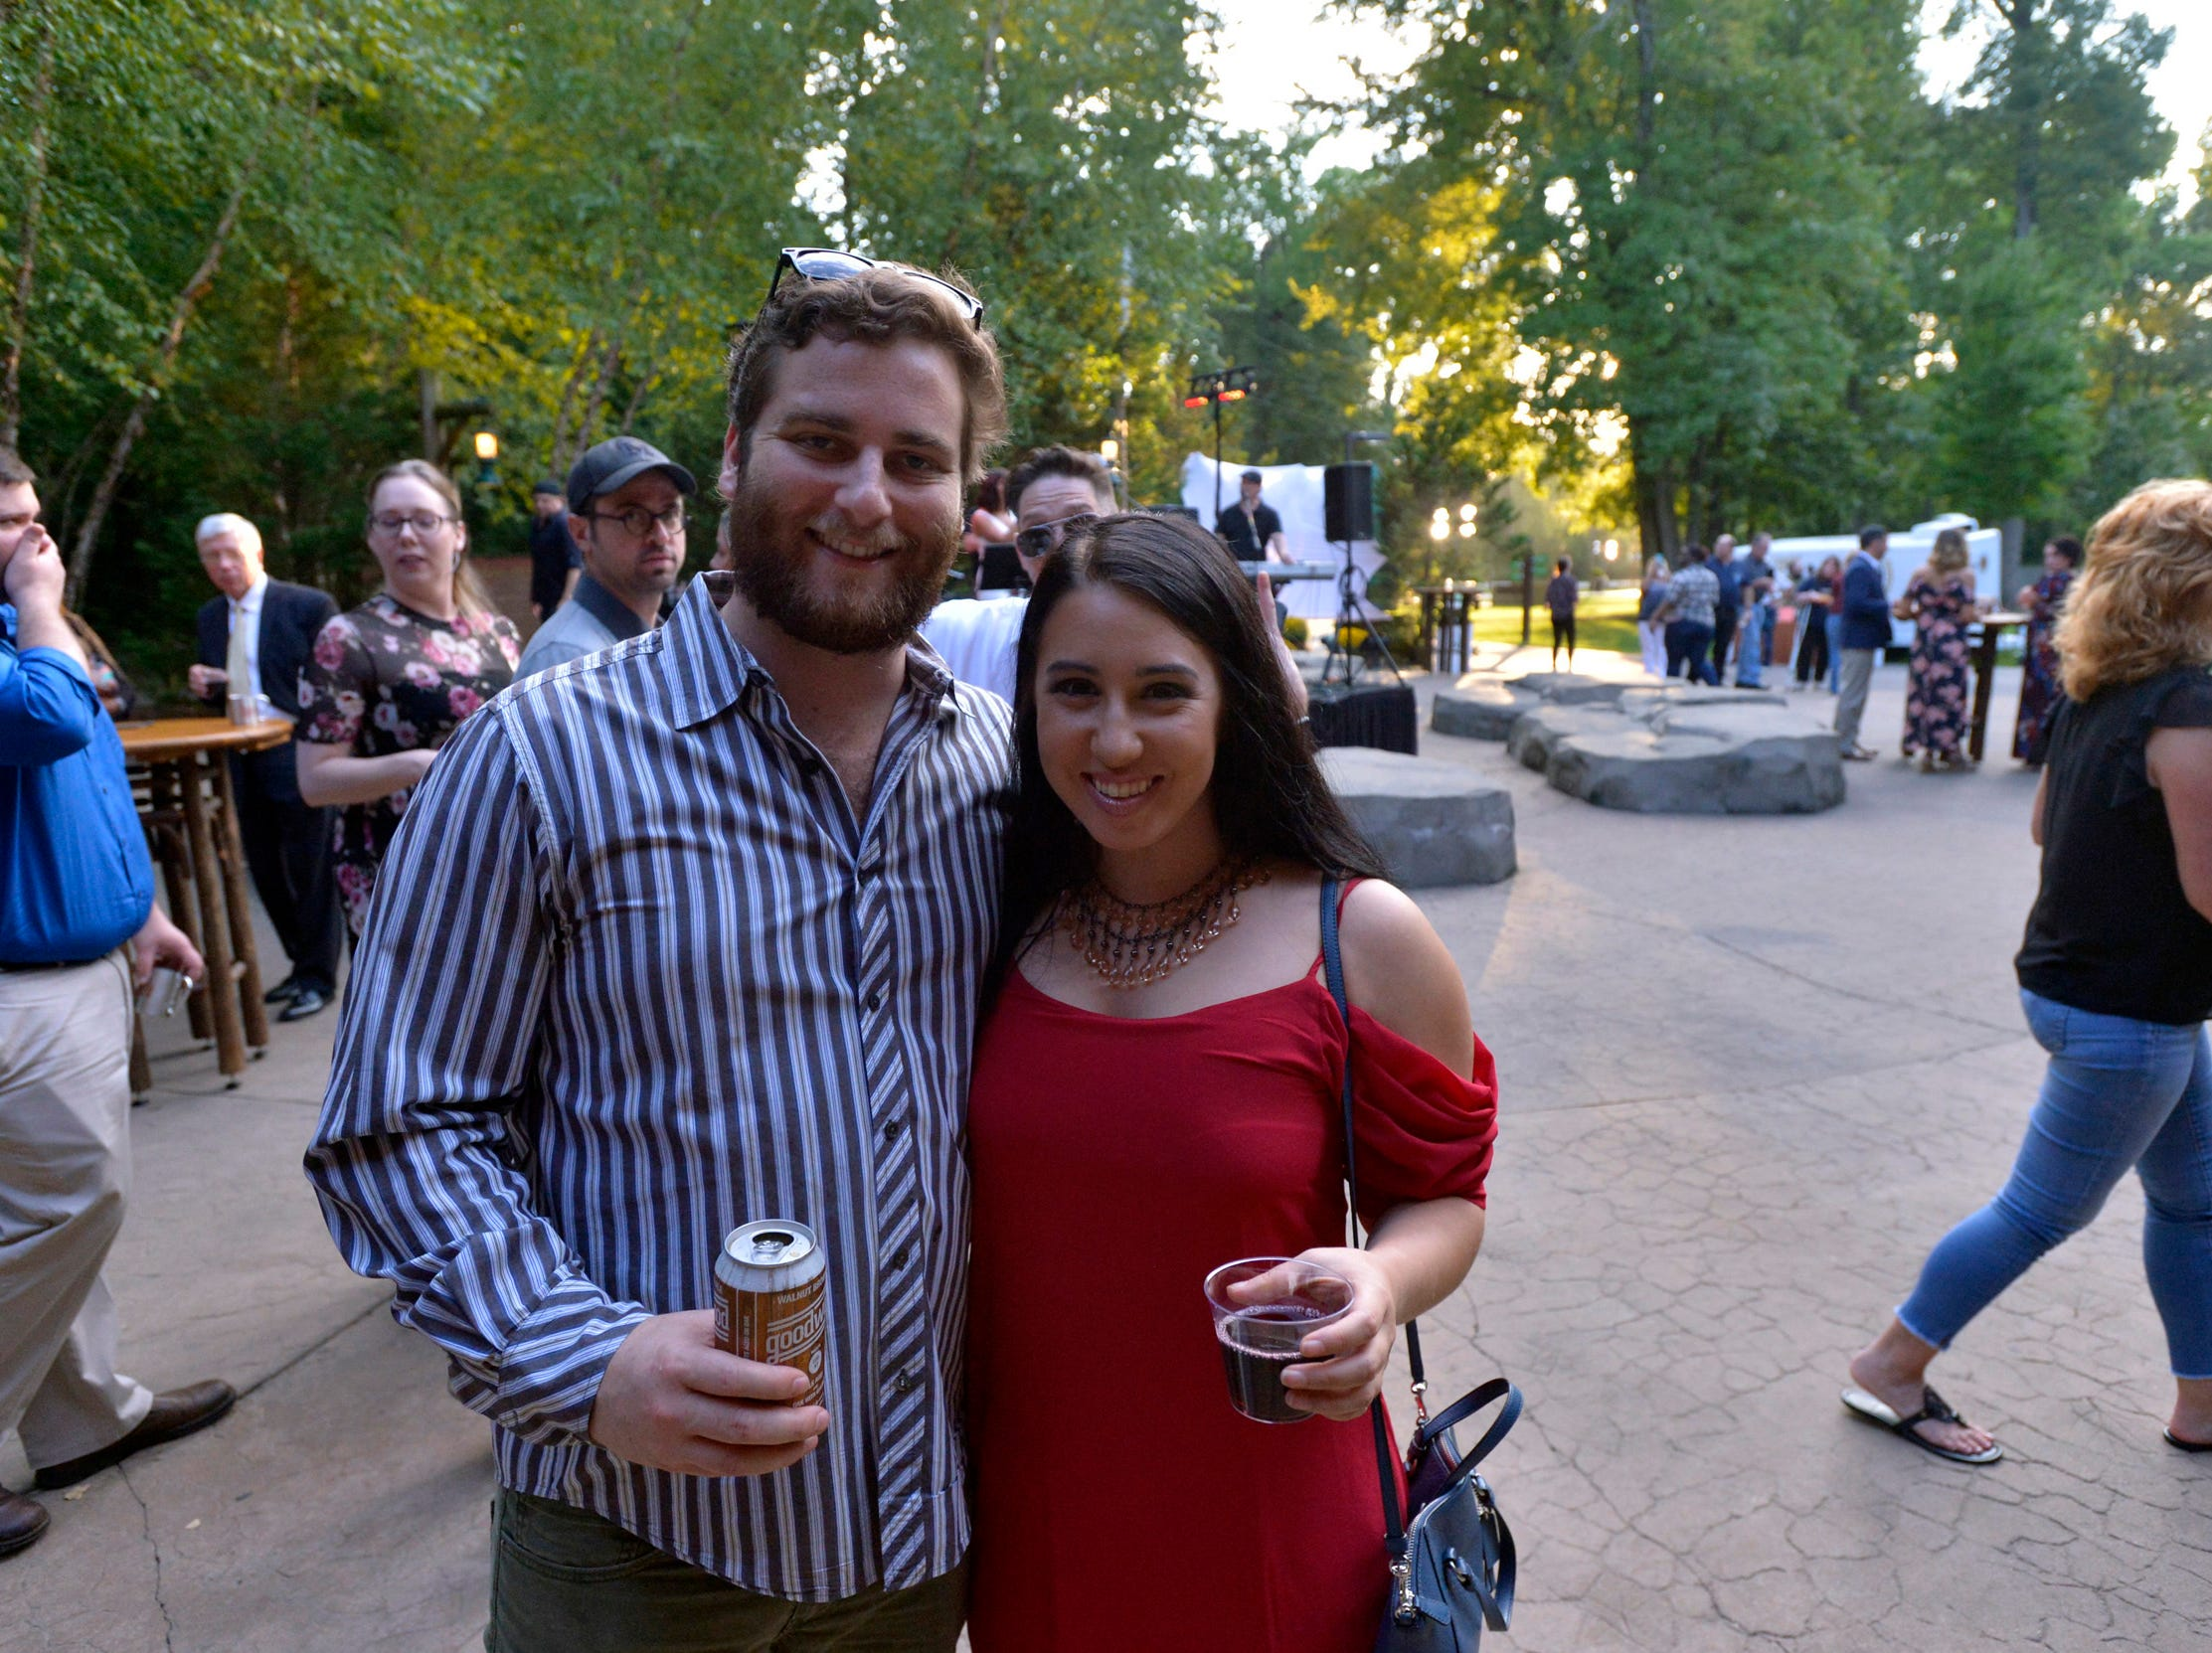 September 13, 2018 -Patrick Koplin and Jocelynn Jordan, representing Brother Juniper's, pose for a photo during the 2018 Memphis Most awards party at Teton Trek in the Memphis Zoo.